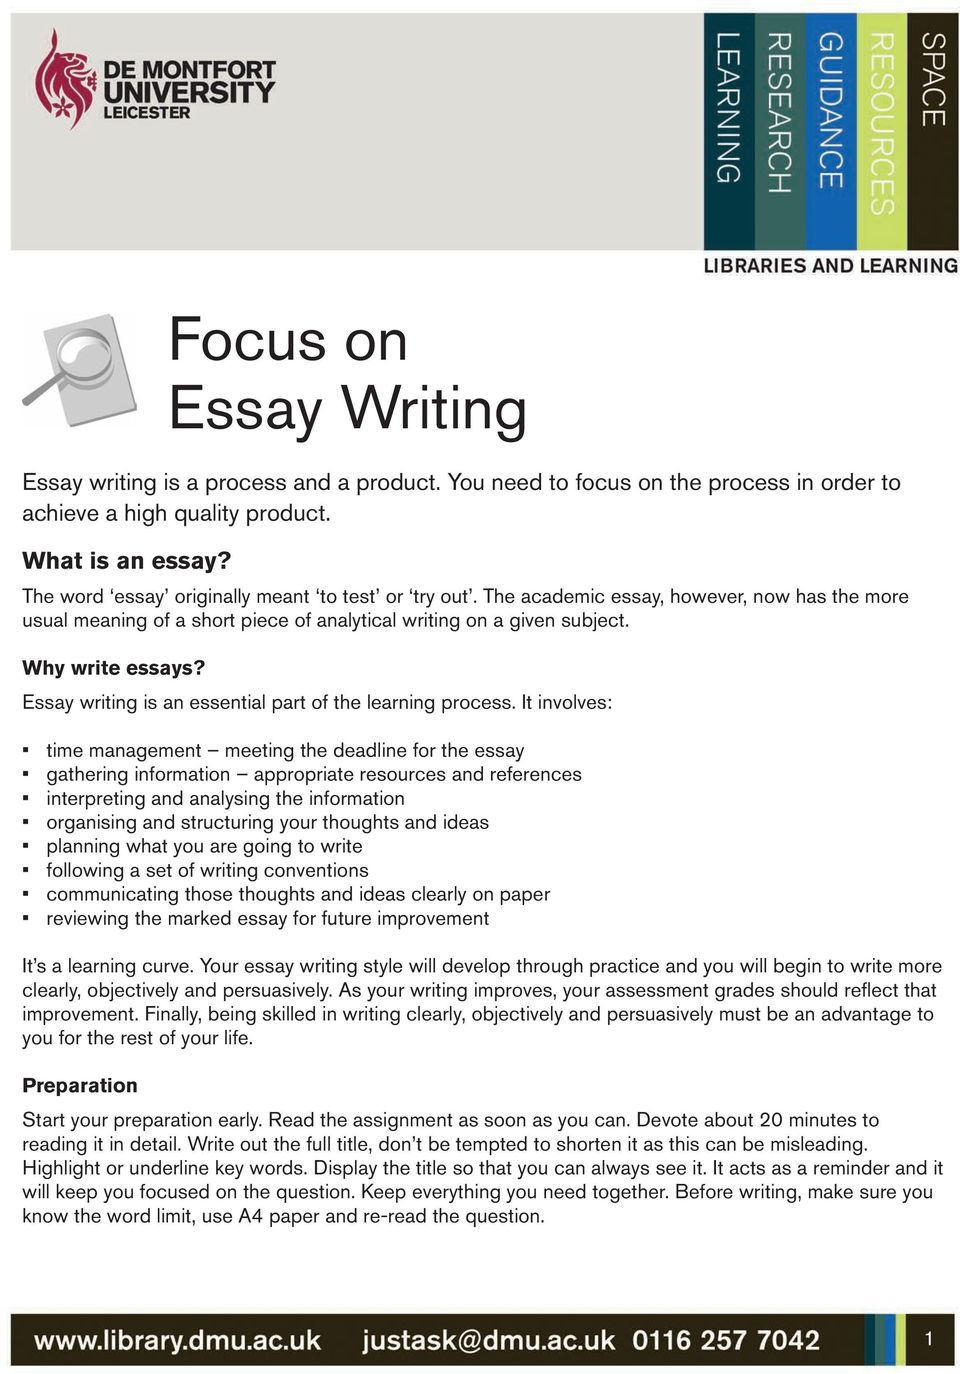 Essay writing is an essential part of the learning process.